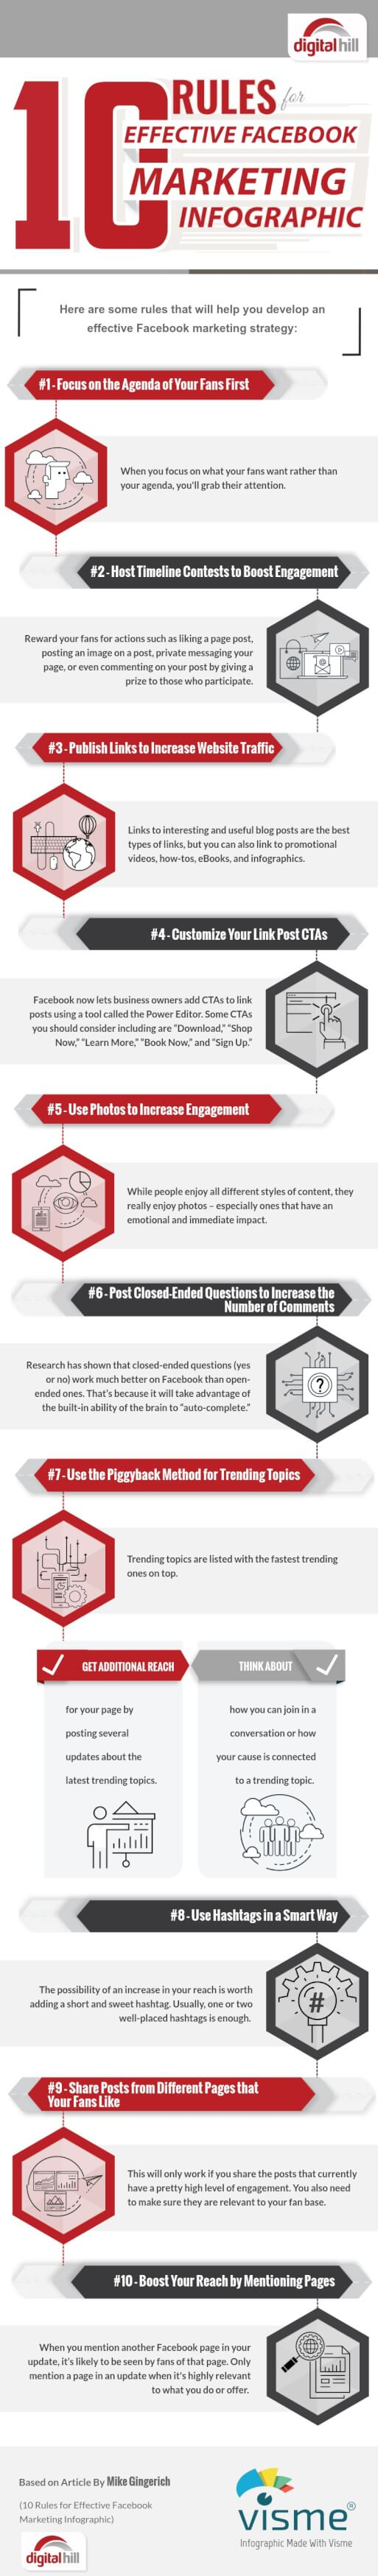 10 Rules for Effective Facebook Marketing Infographic